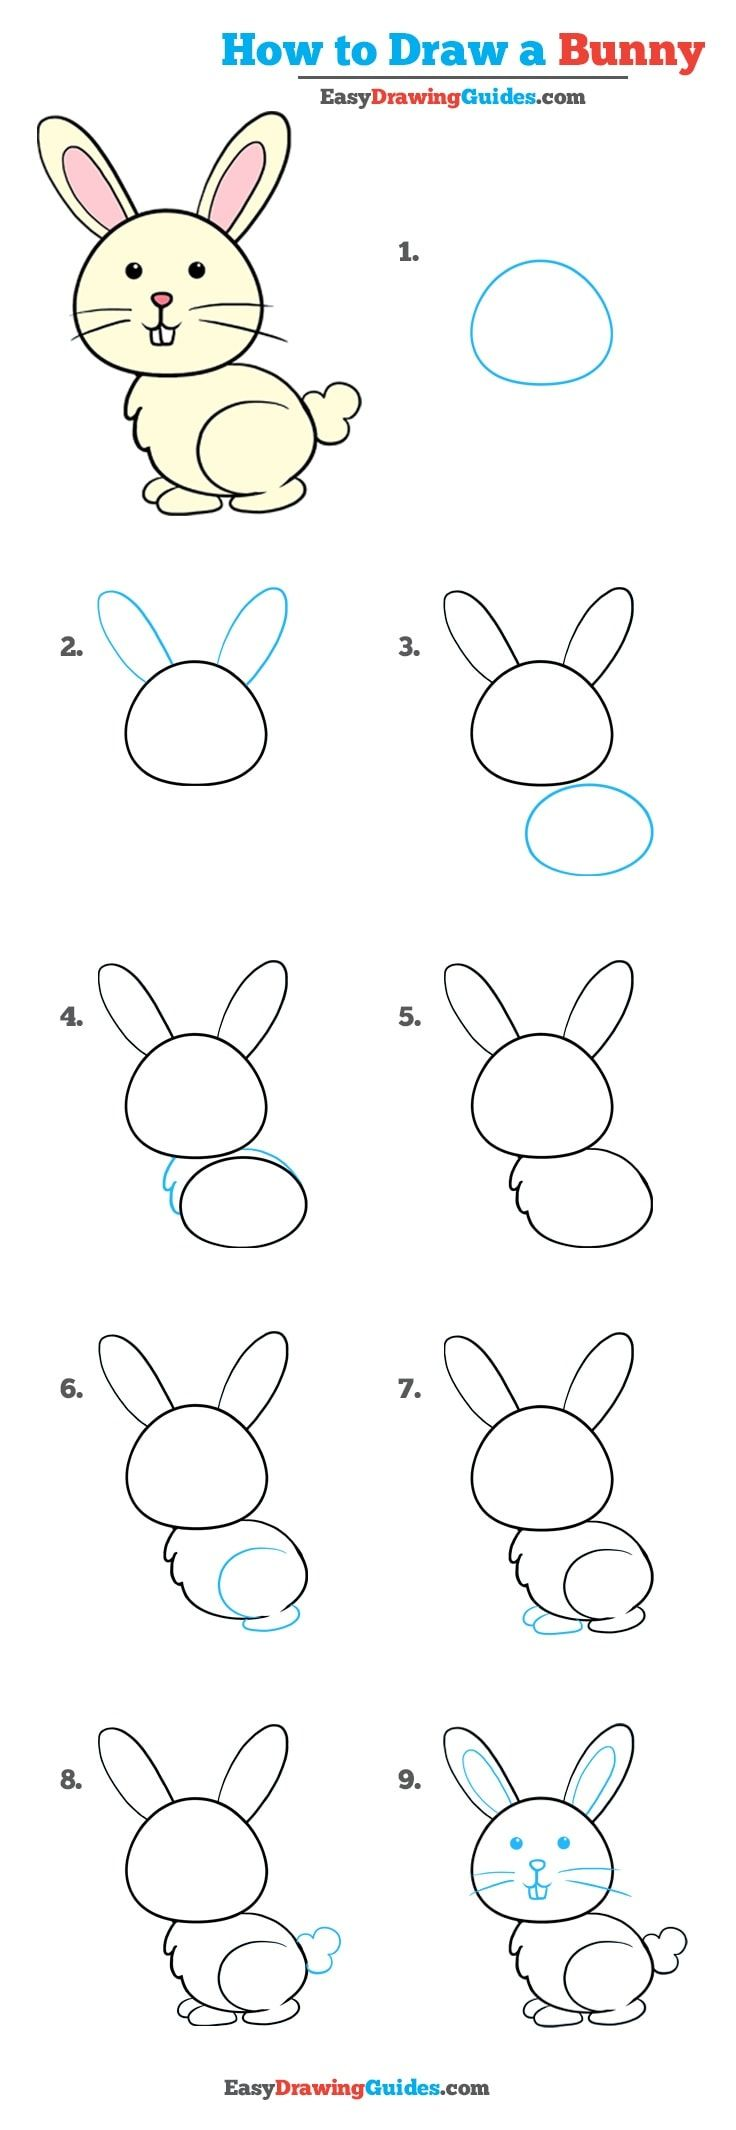 How To Draw A Bunny In A Few Easy Steps Easy Drawing Guides Bunny Drawing Drawing Tutorials For Kids Easy Drawings For Kids